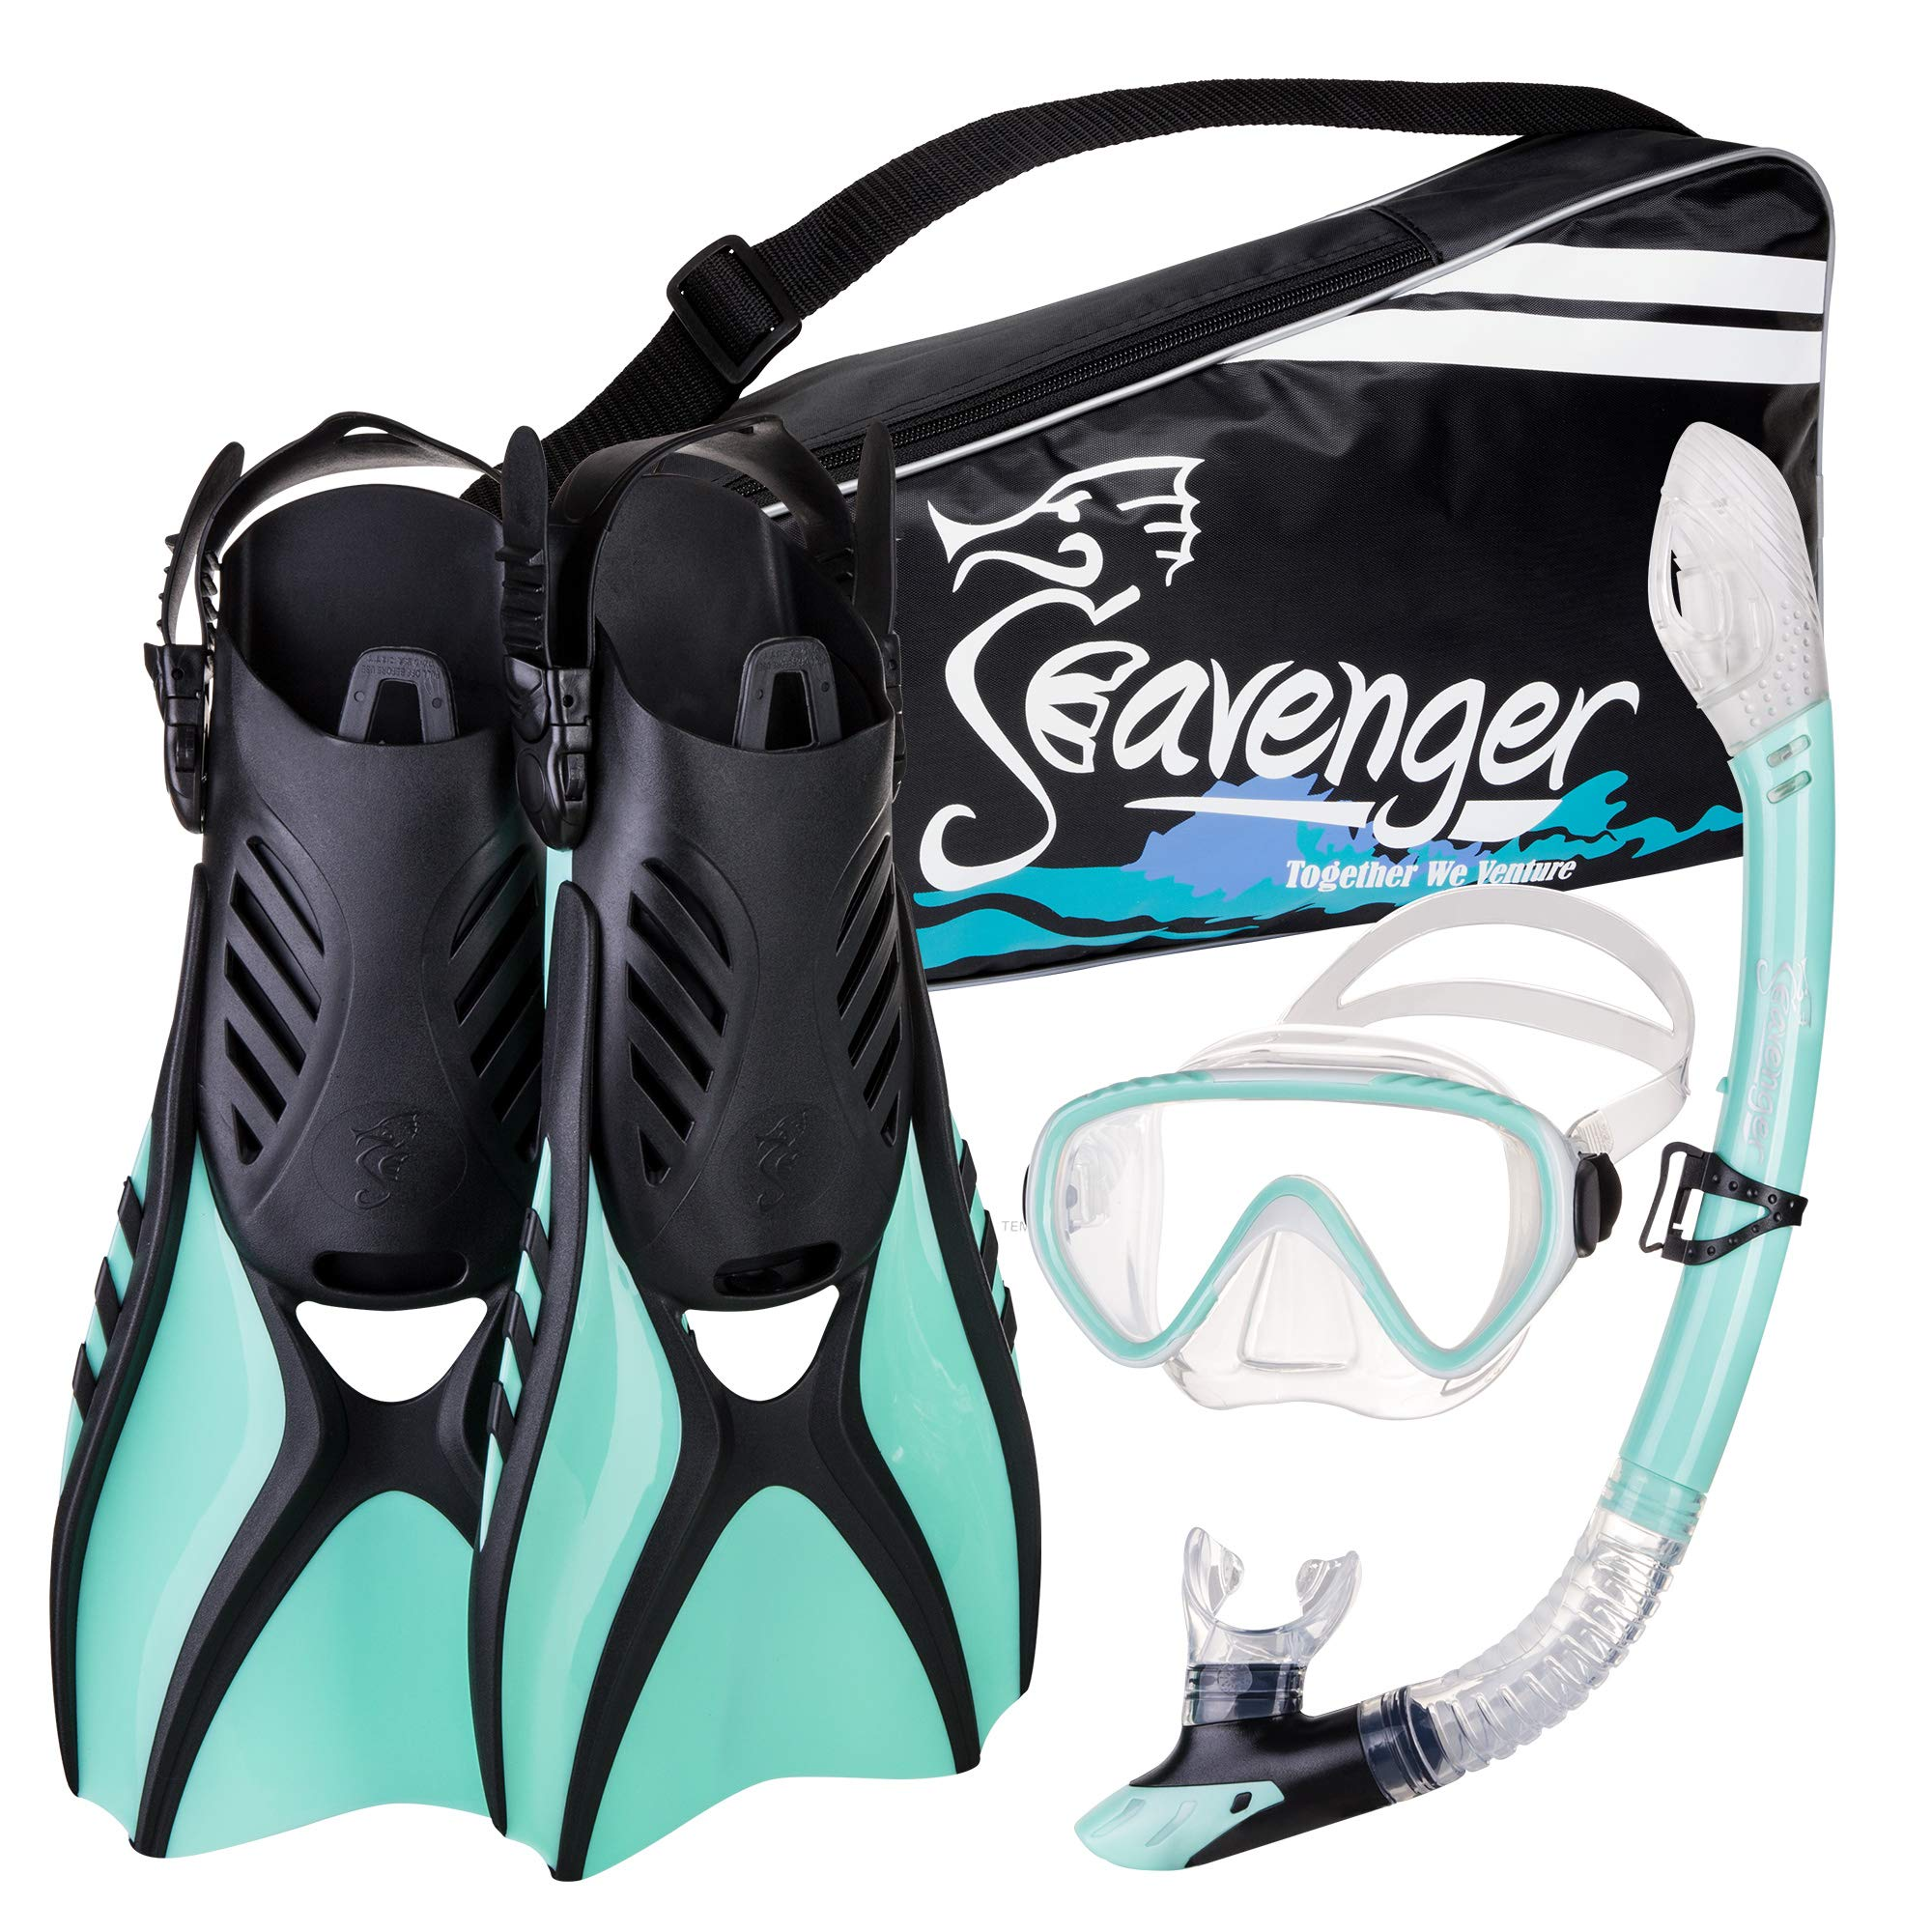 Seavenger Advanced Snorkeling Set with Panoramic Mask, Trek Fins, Dry Top Snorkel & Gear Bag (Mint, Small) by Seavenger